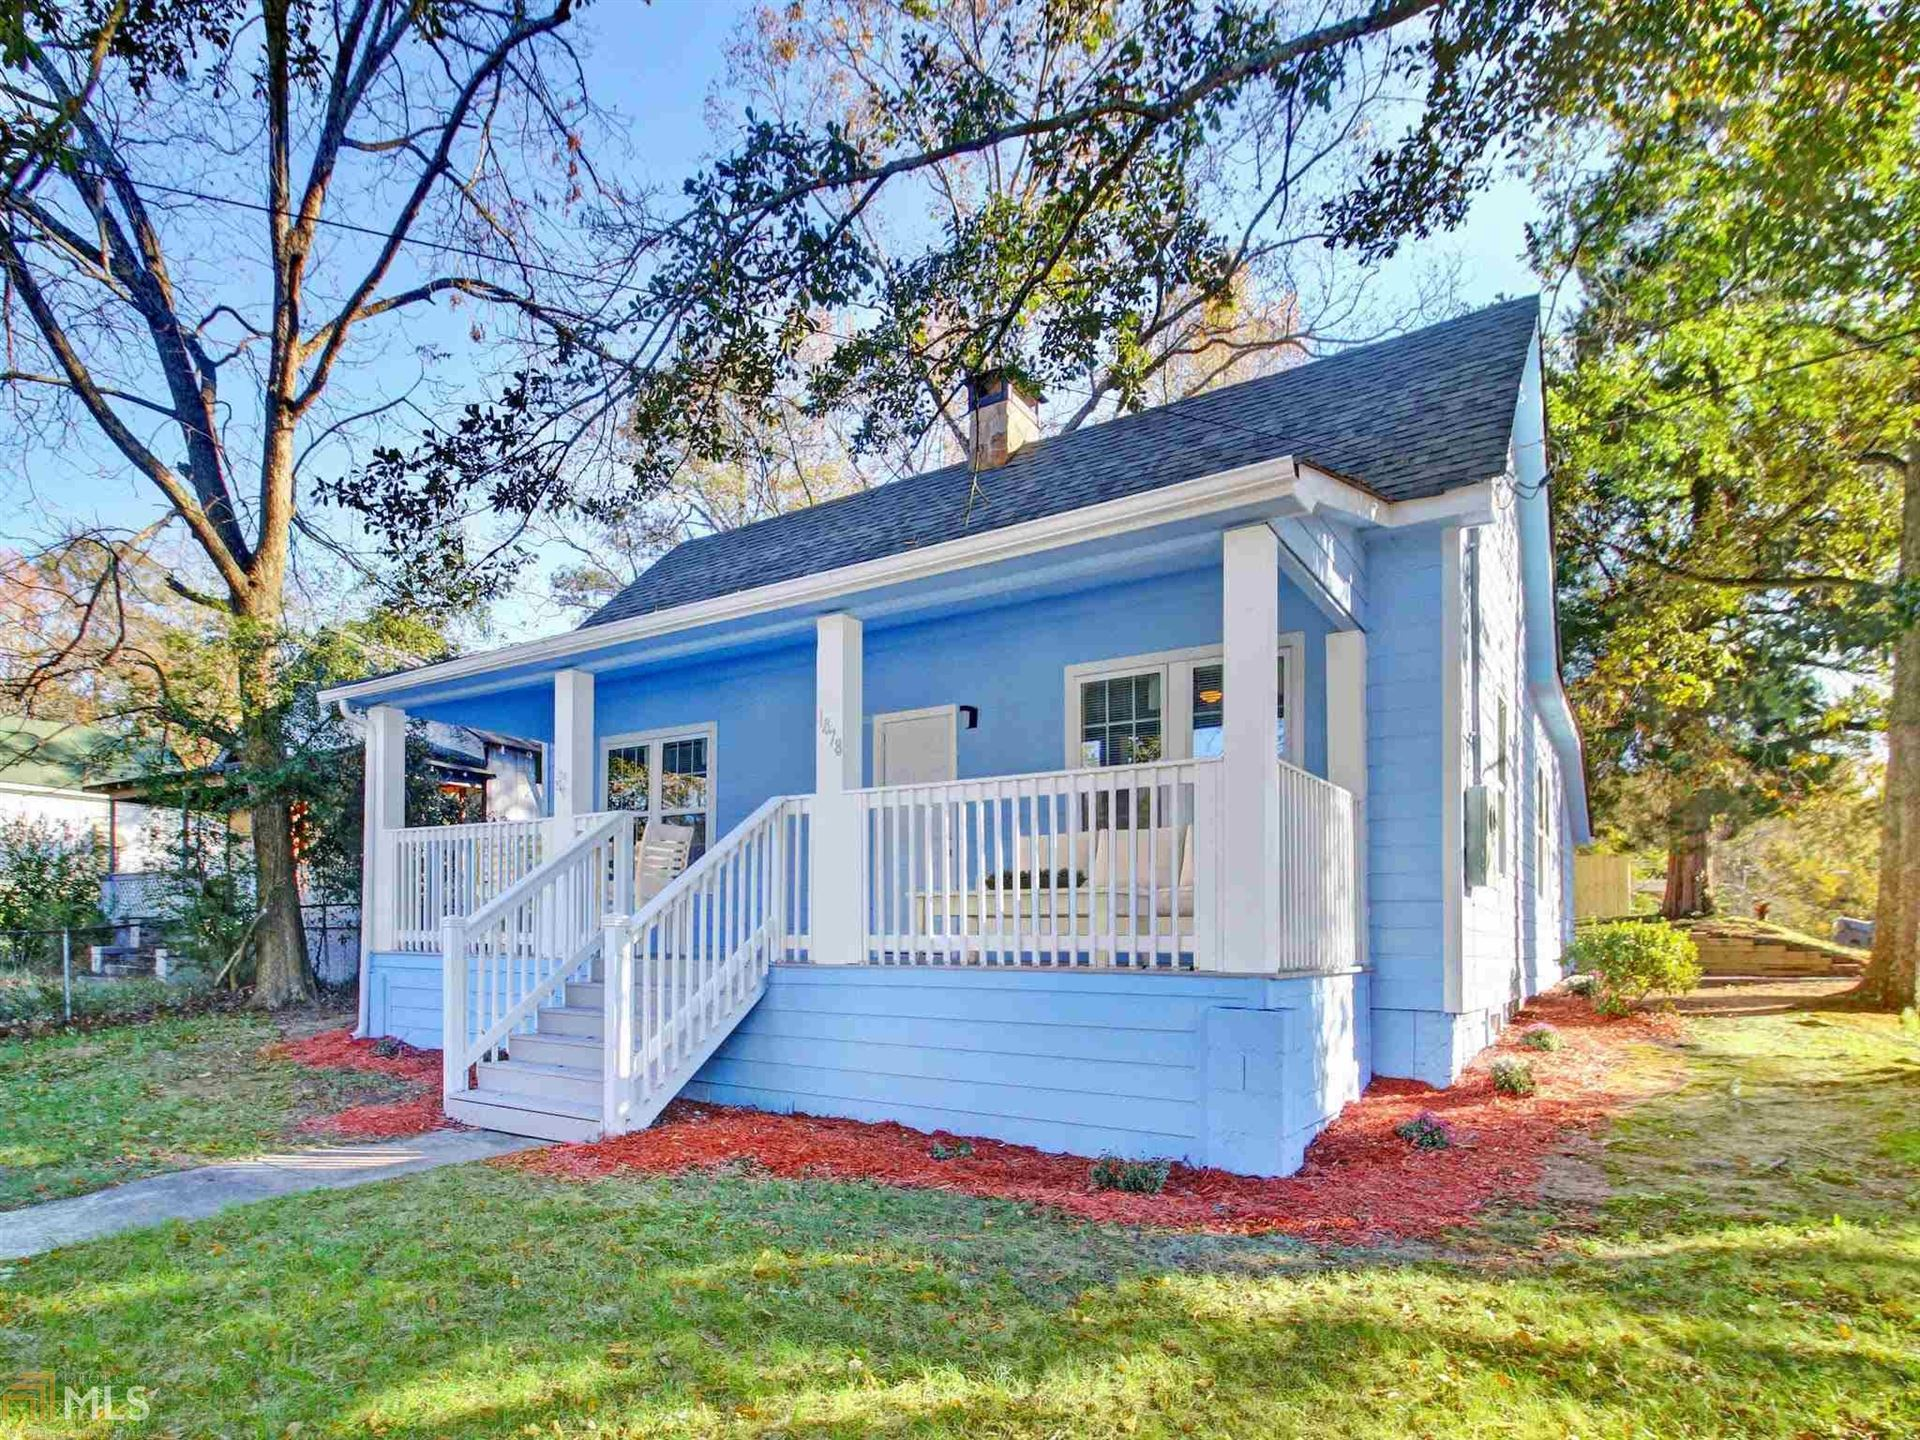 1878 Williams Ave, East Point, GA 30344 - #: 8891827